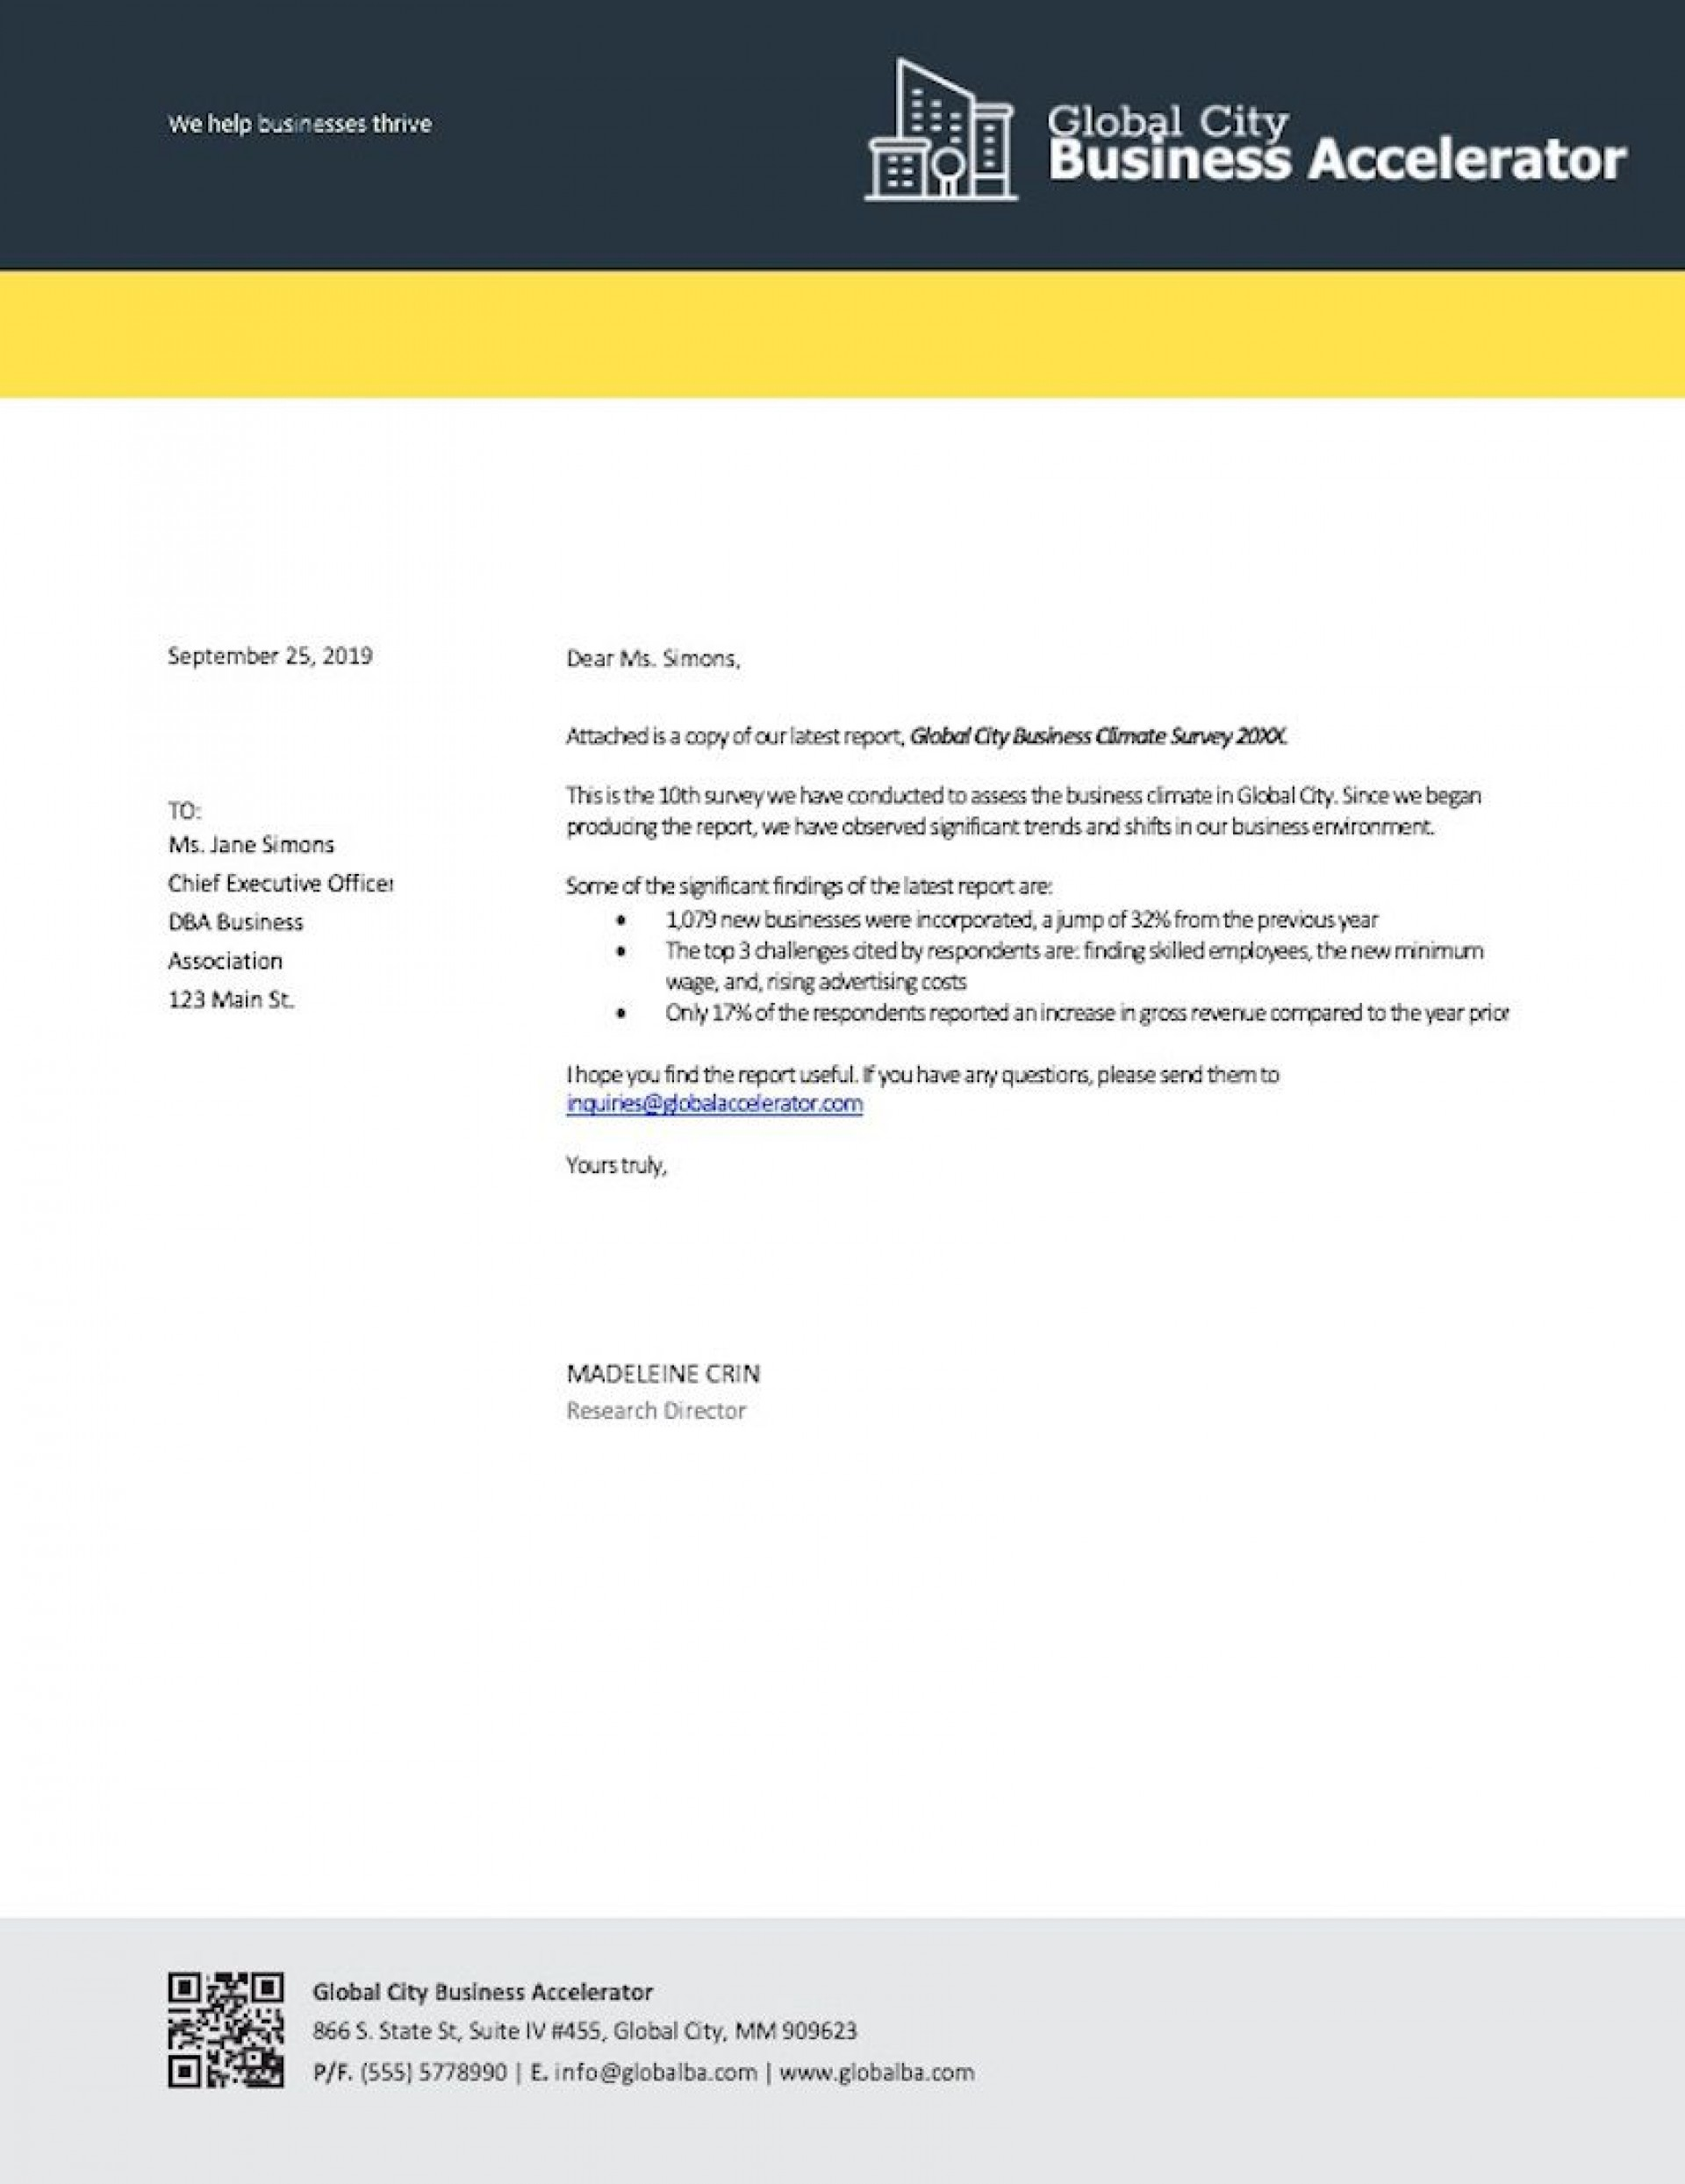 007 Wondrou Letter Template Microsoft Word Highest Clarity  Naval Format 2010 20071920